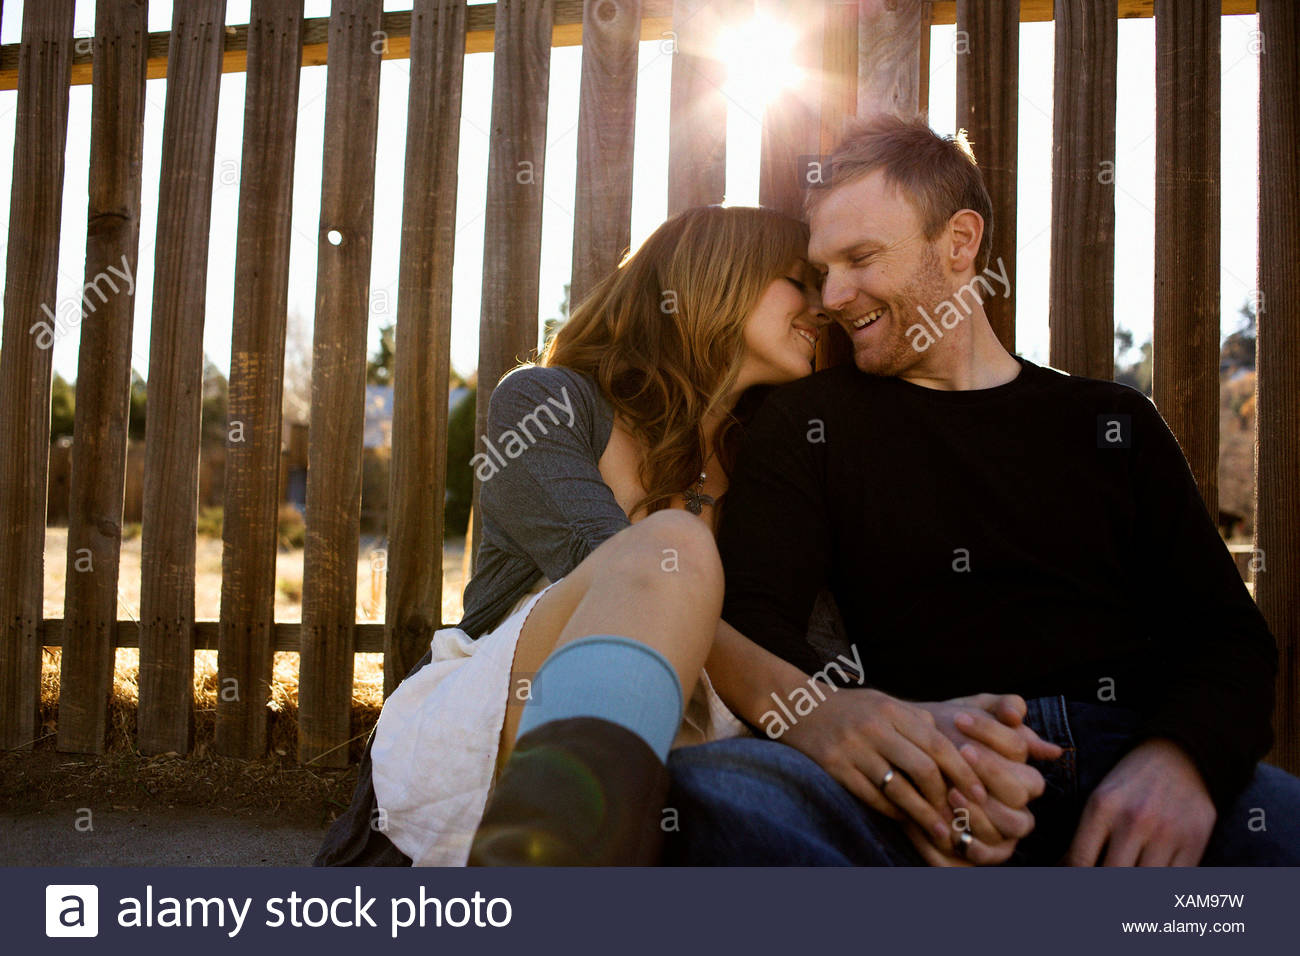 Couple sits against a fence. Stock Photo